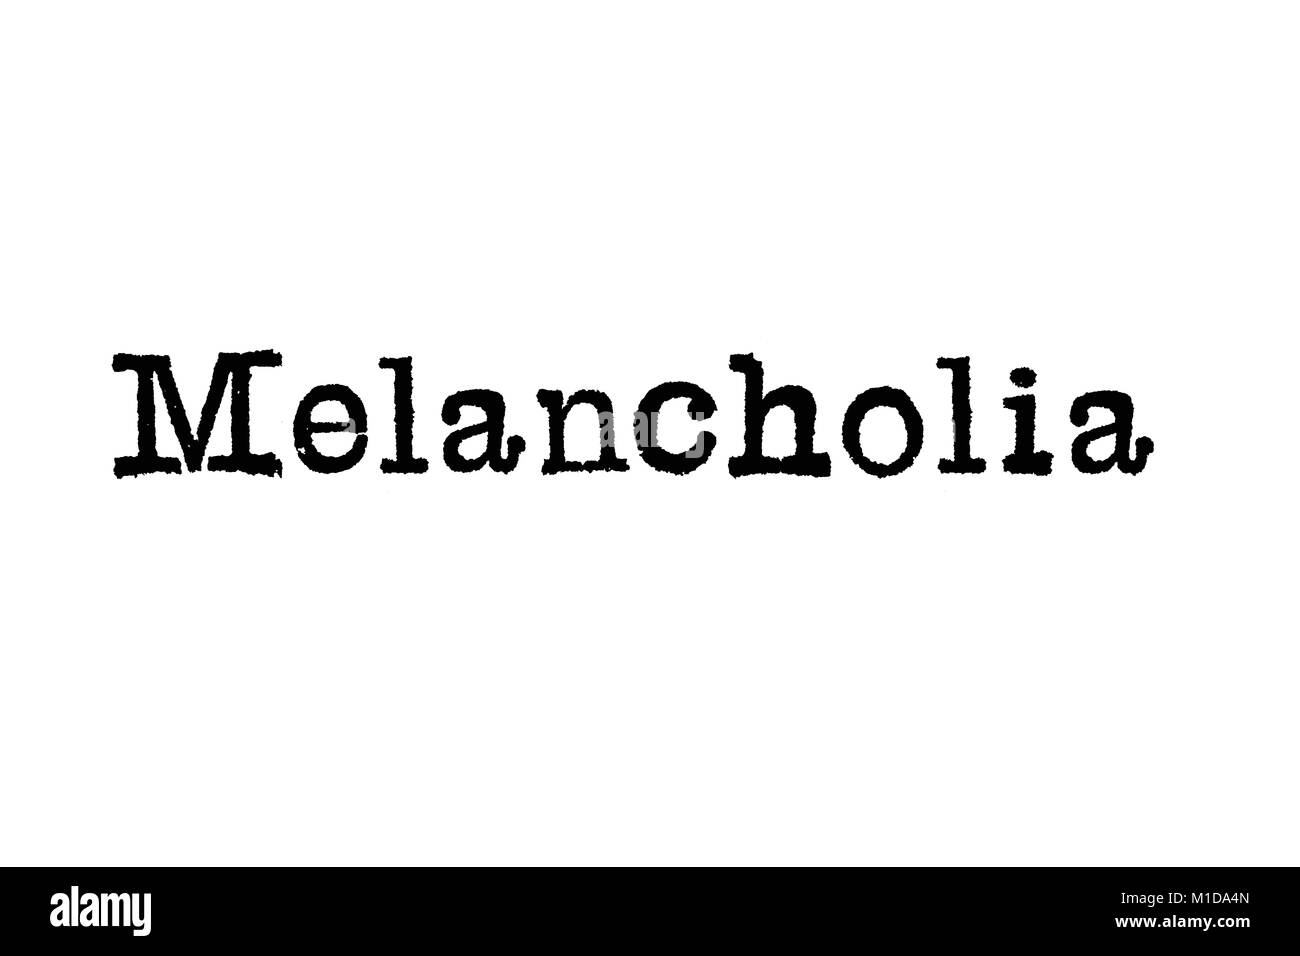 The word Melancholia from a typewriter on a white background - Stock Image